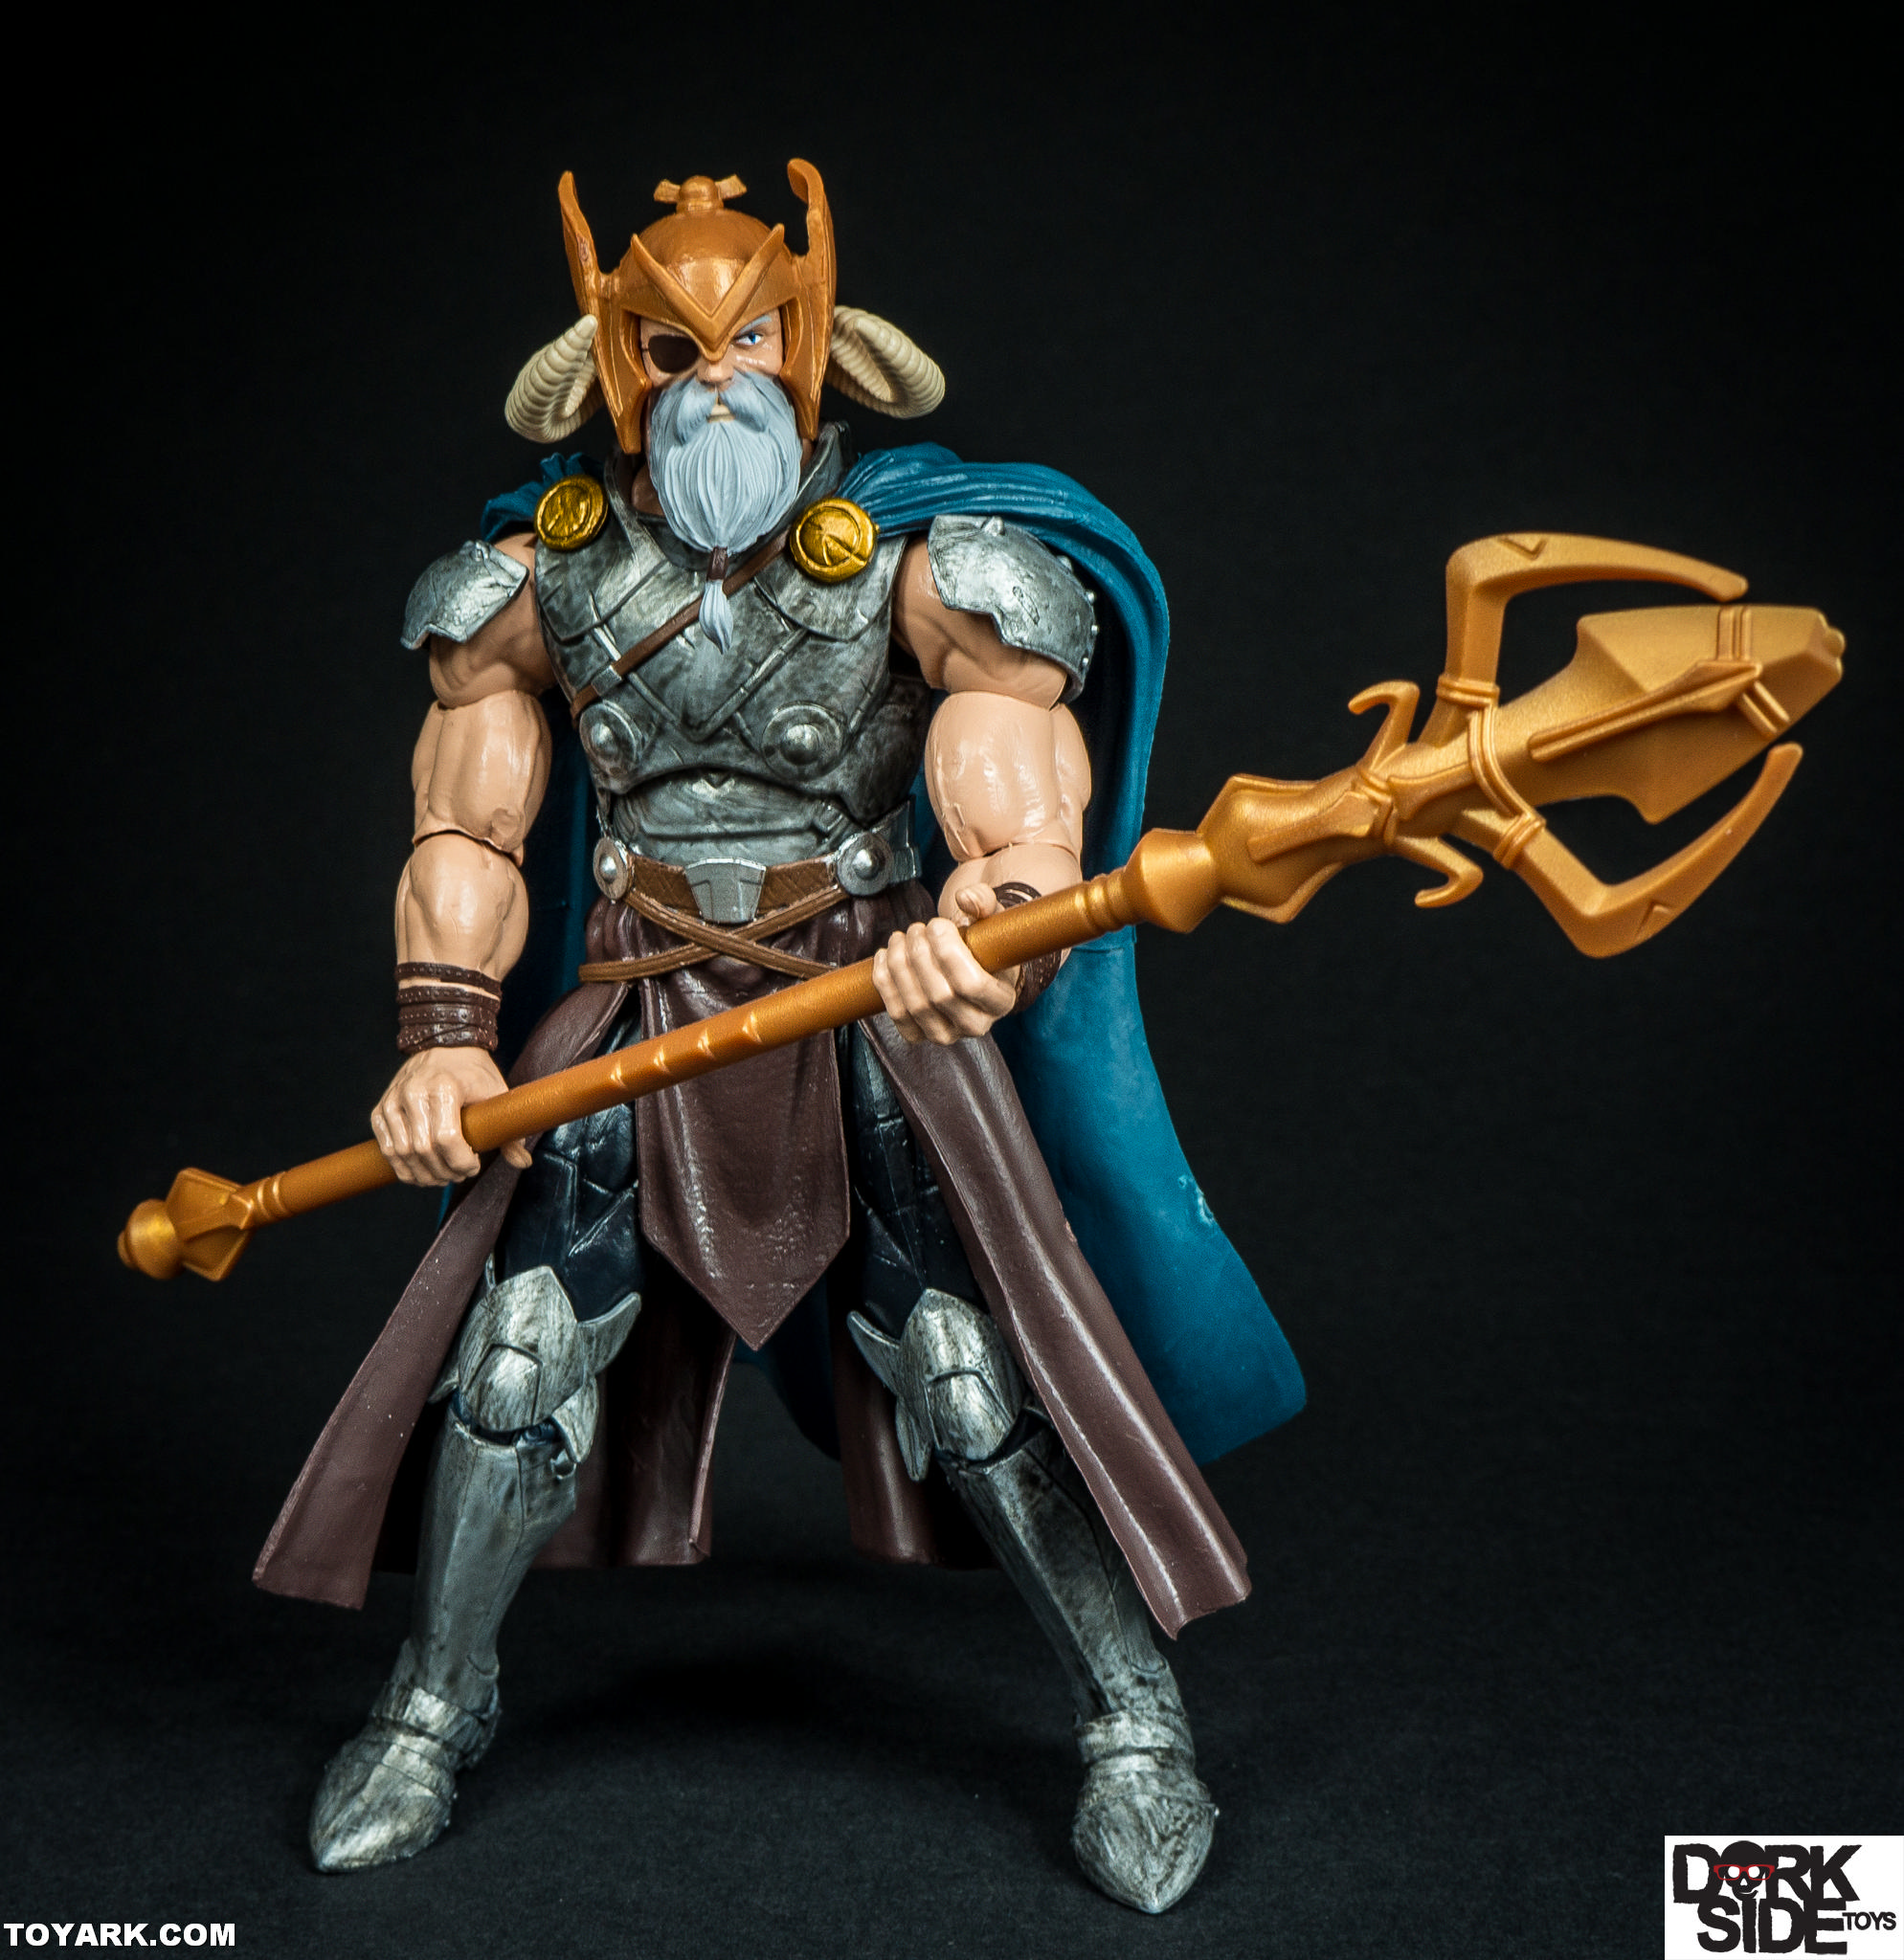 Great Wallpaper Marvel Odin - 010-Marvel-Legends-Odin-BAF-Avengers-Allfather  Graphic_943261.jpg